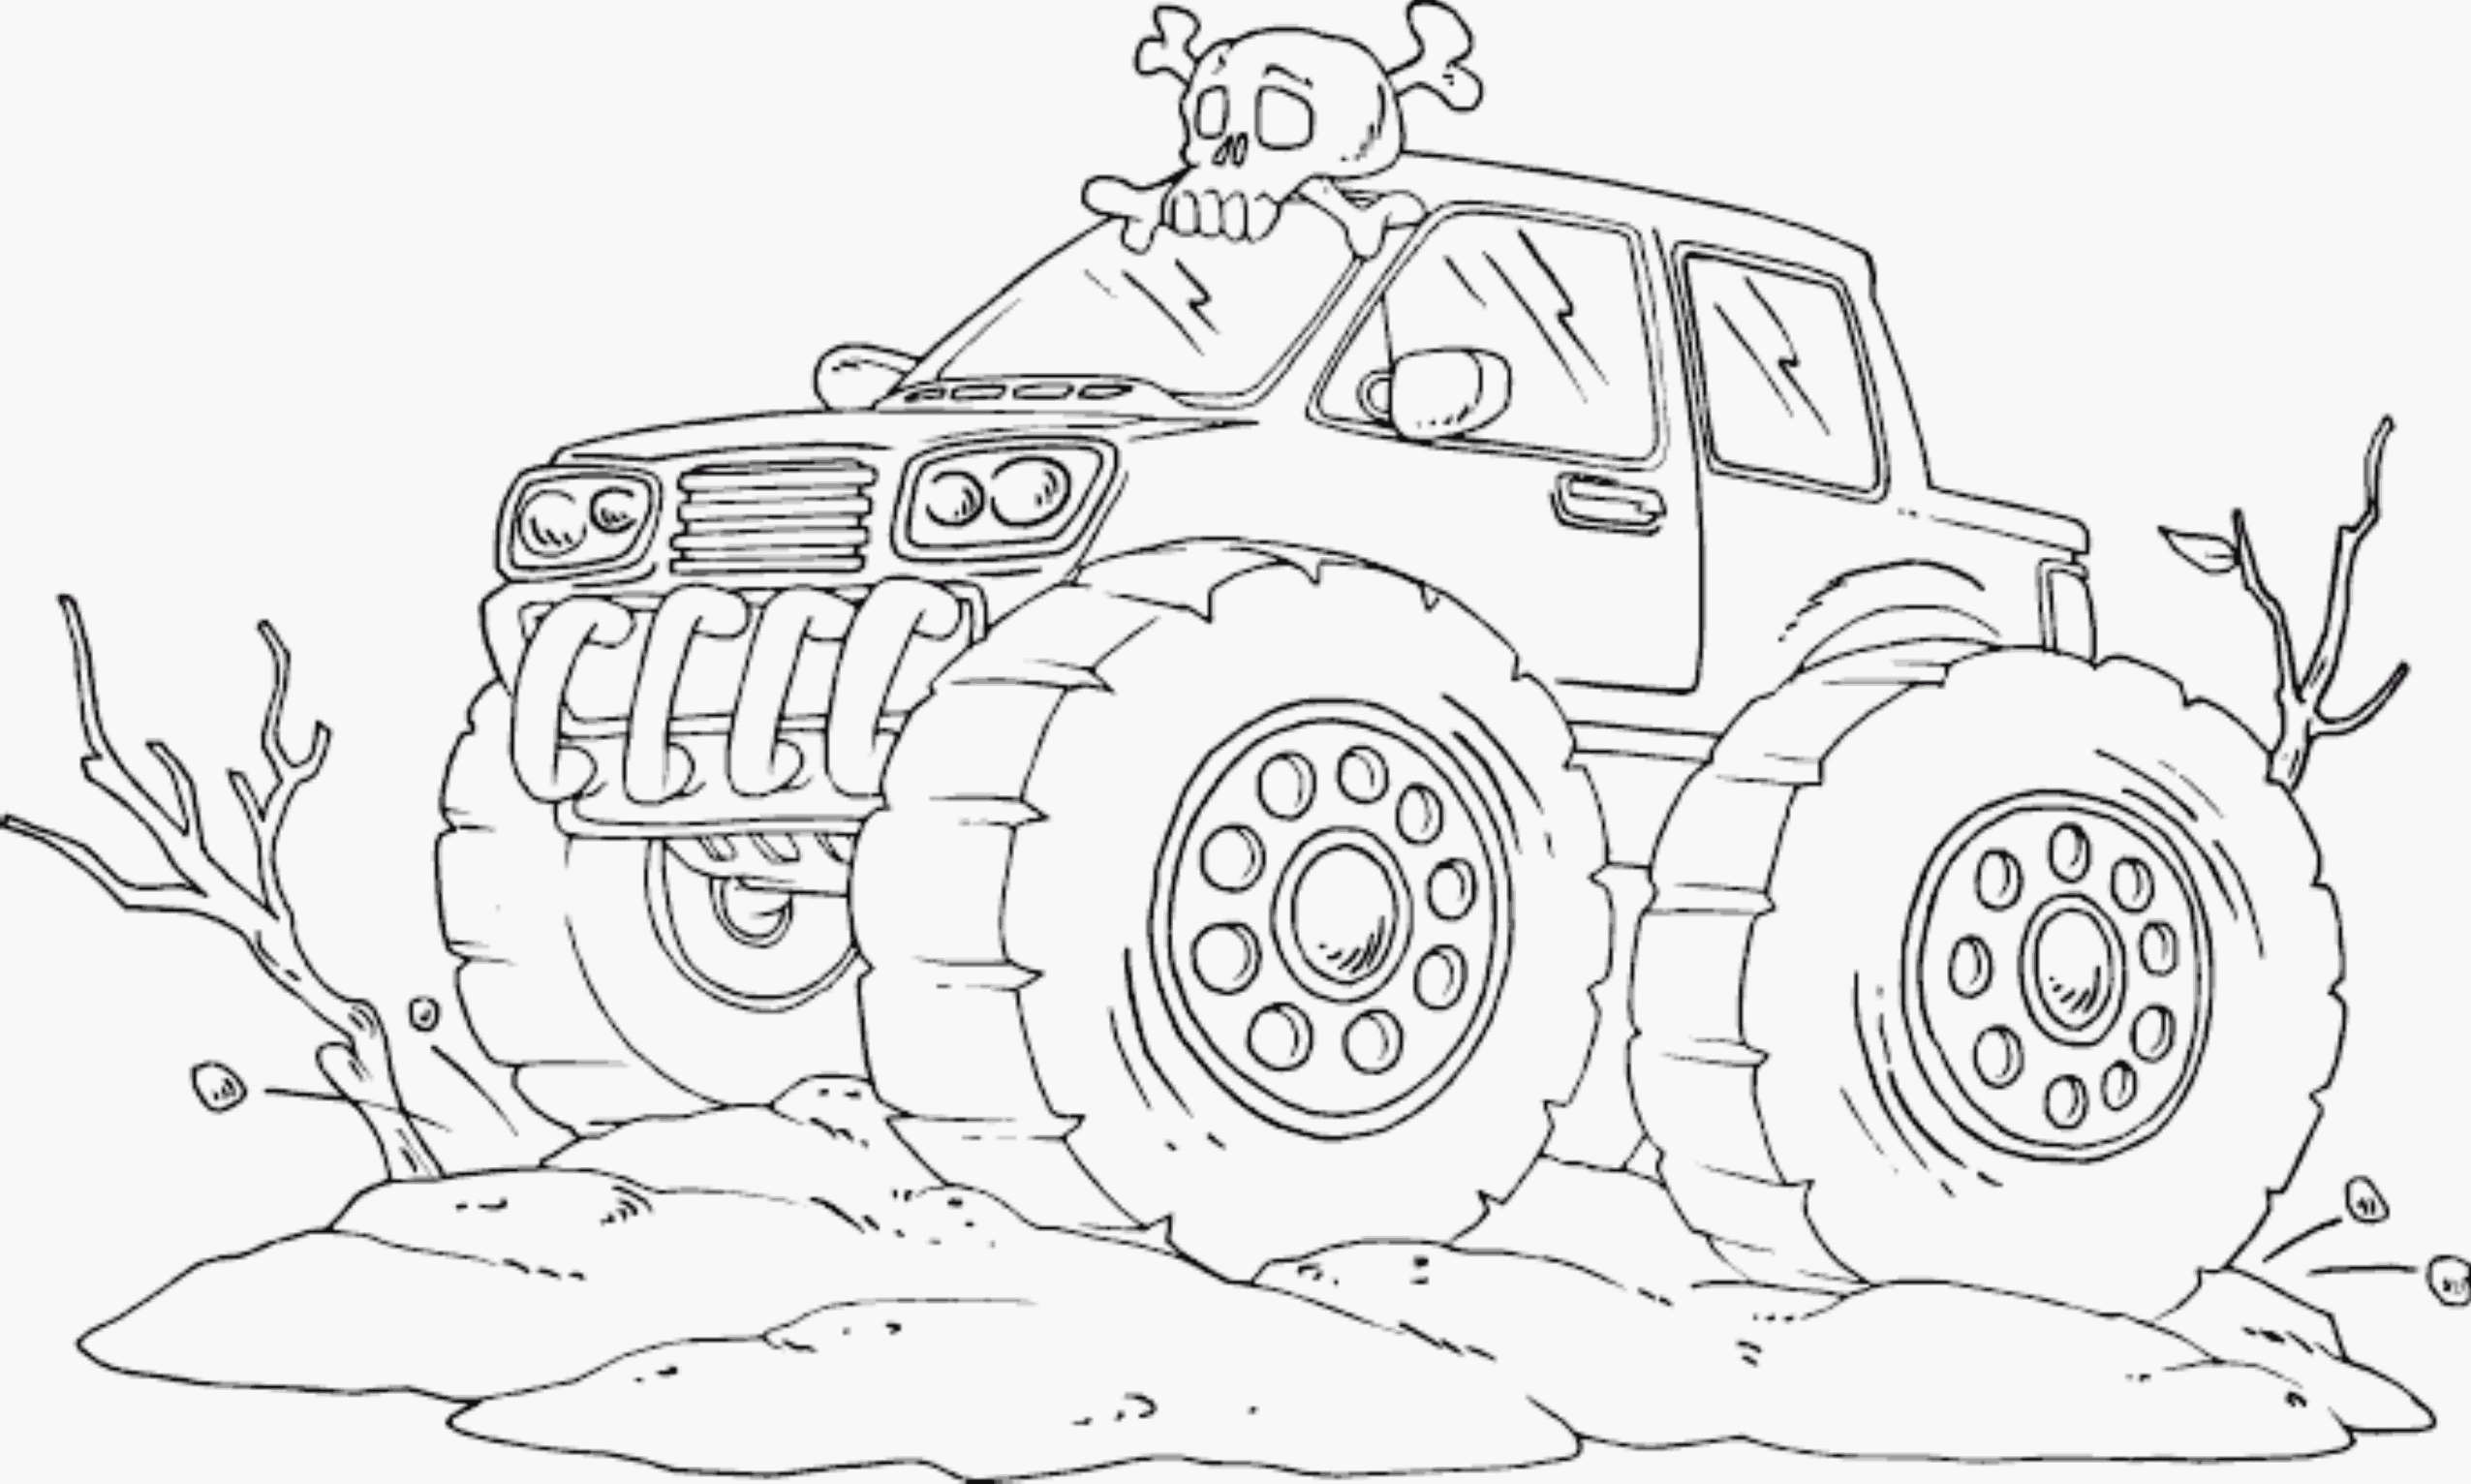 bigfoot monster truck coloring pages - Drawing Pictures For Colouring